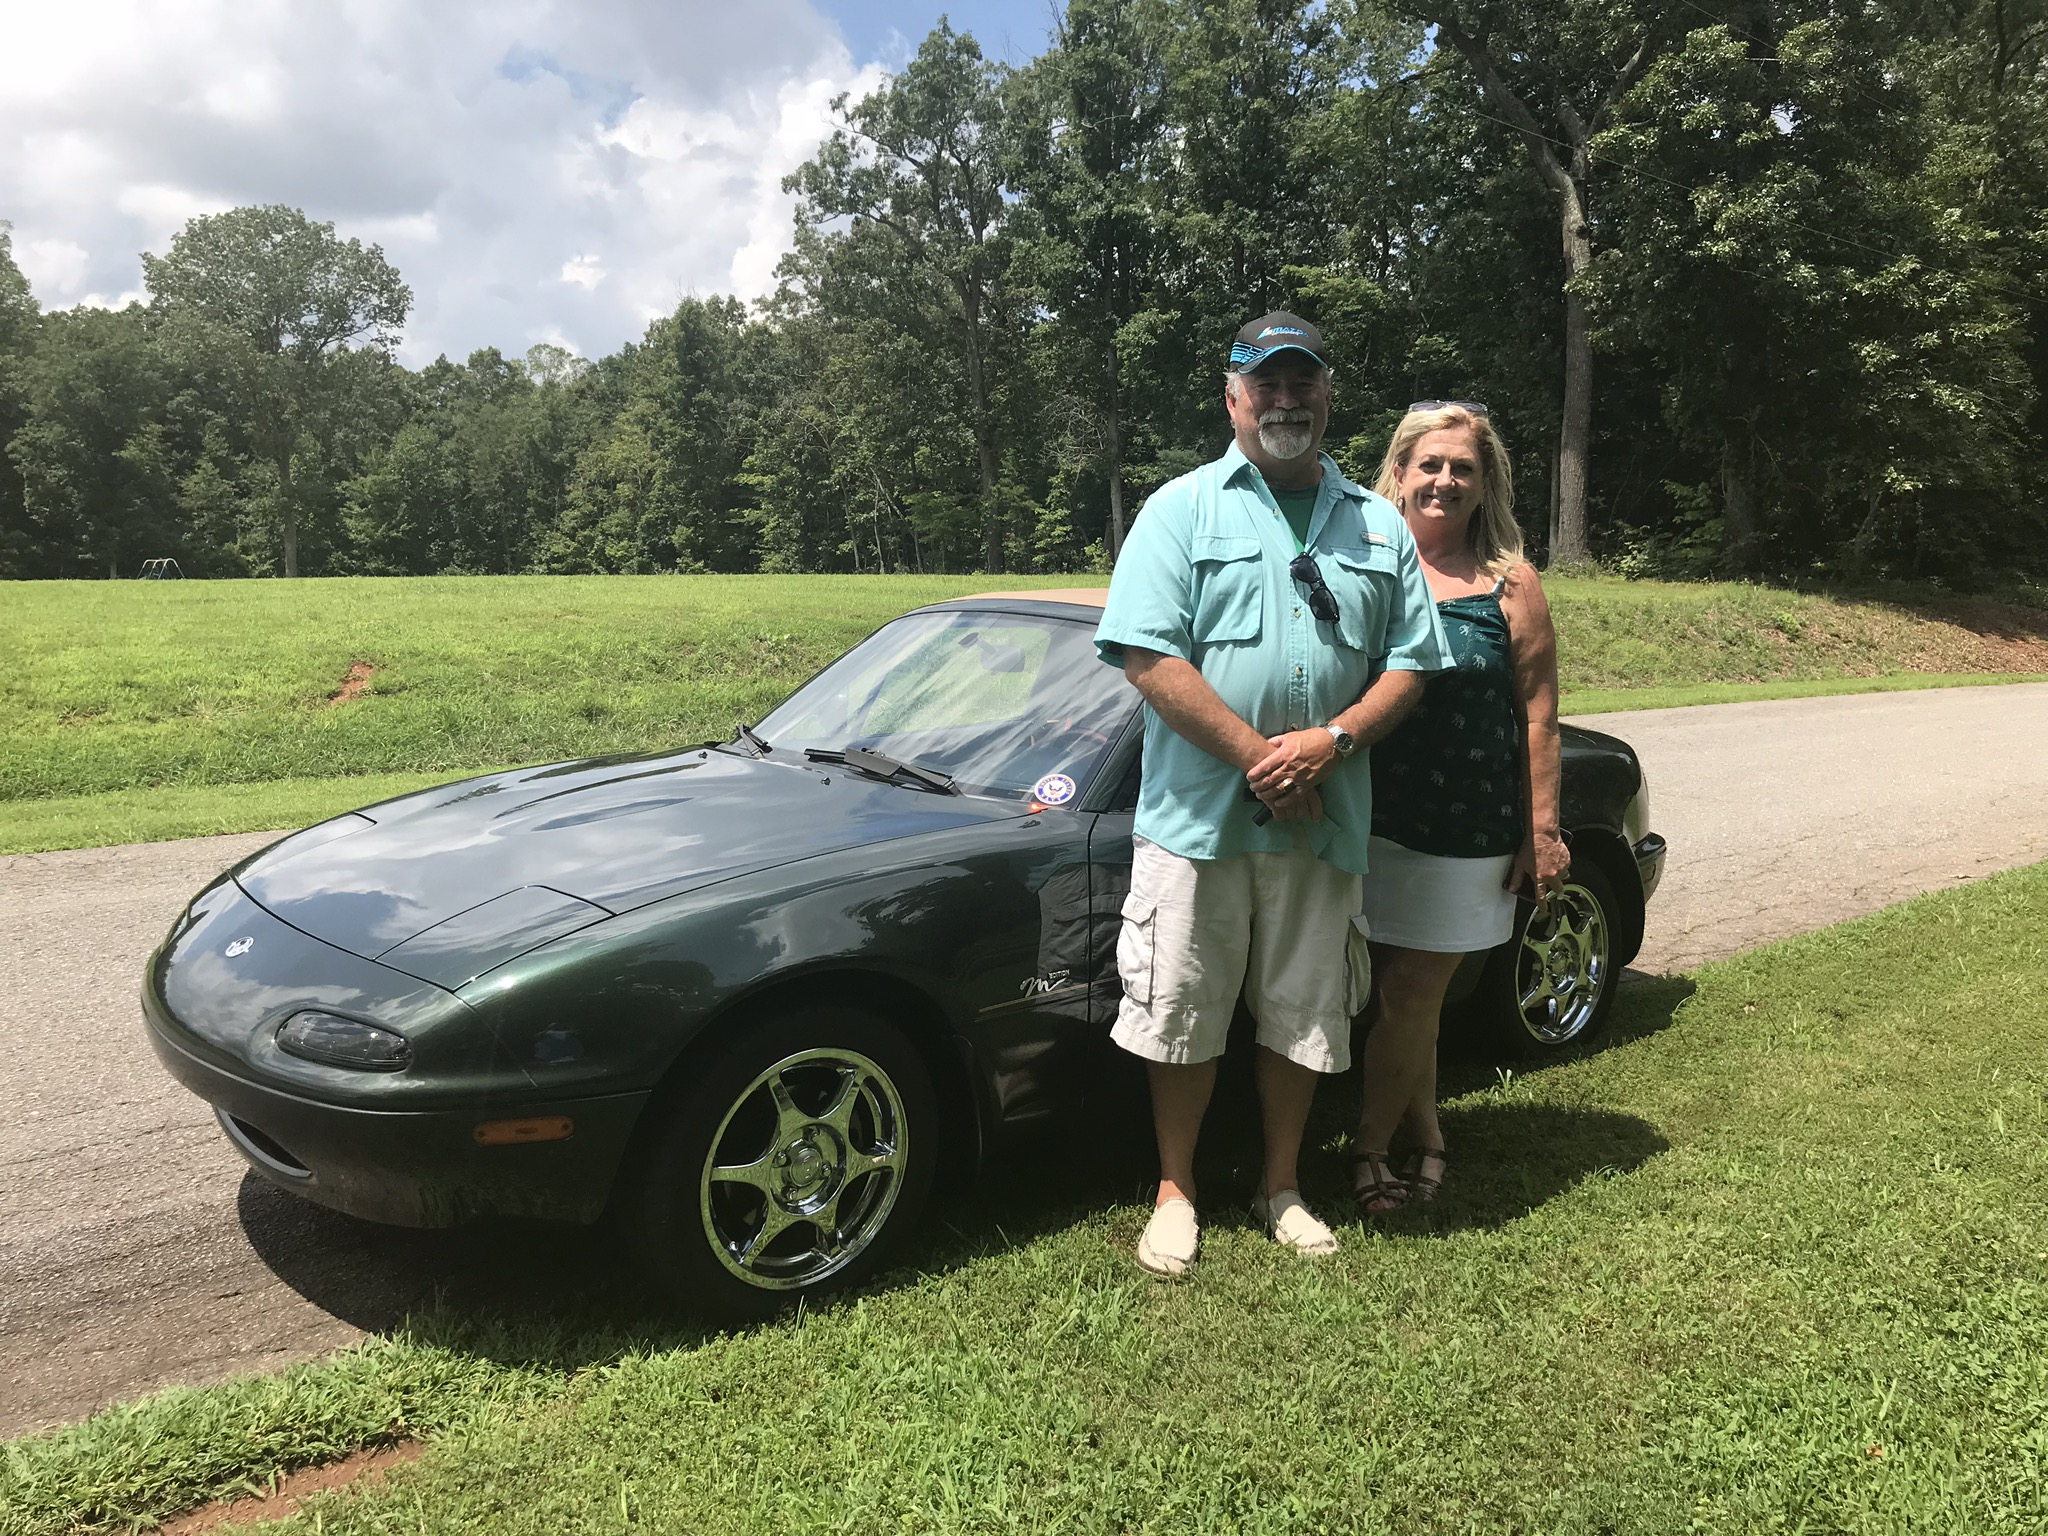 Ben & Lisa Hawley with the Miata they had recently purchased.